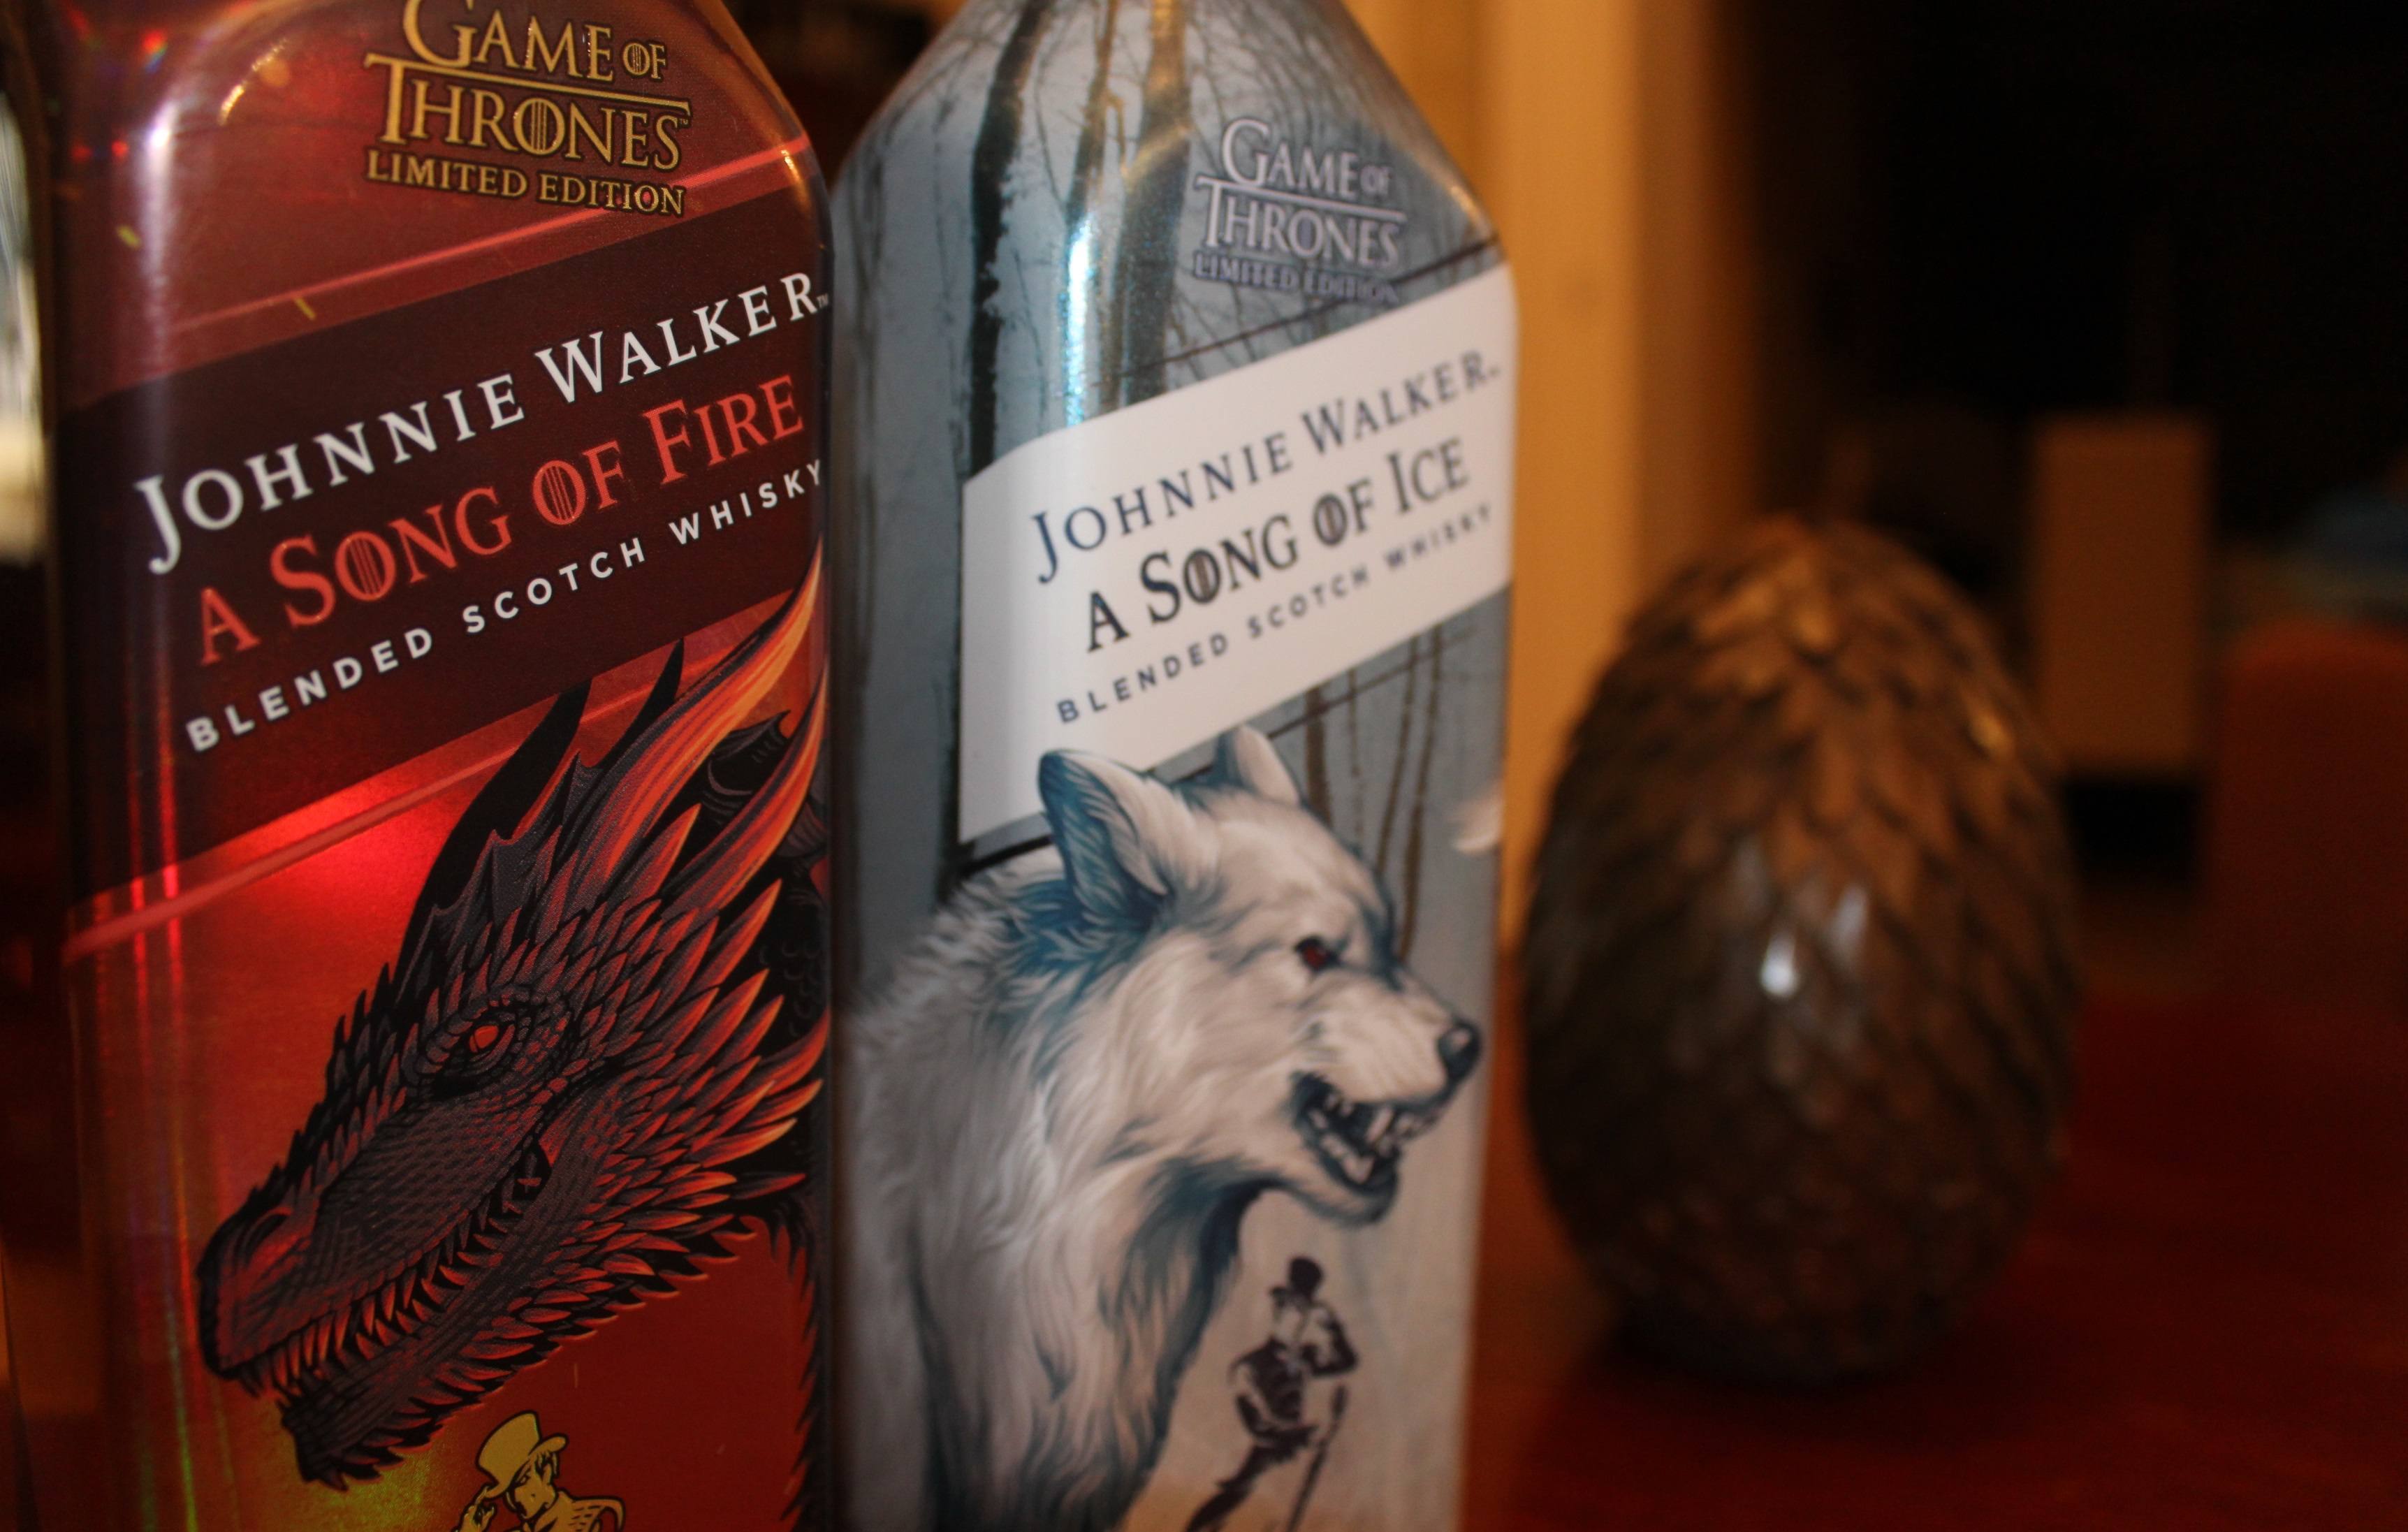 szmk_game_of_thrones_tronok_harca_johnnie_walker_whisky_scotch_tel_kozeleg_tuz_es_jeg_dala_hbo_1.jpg